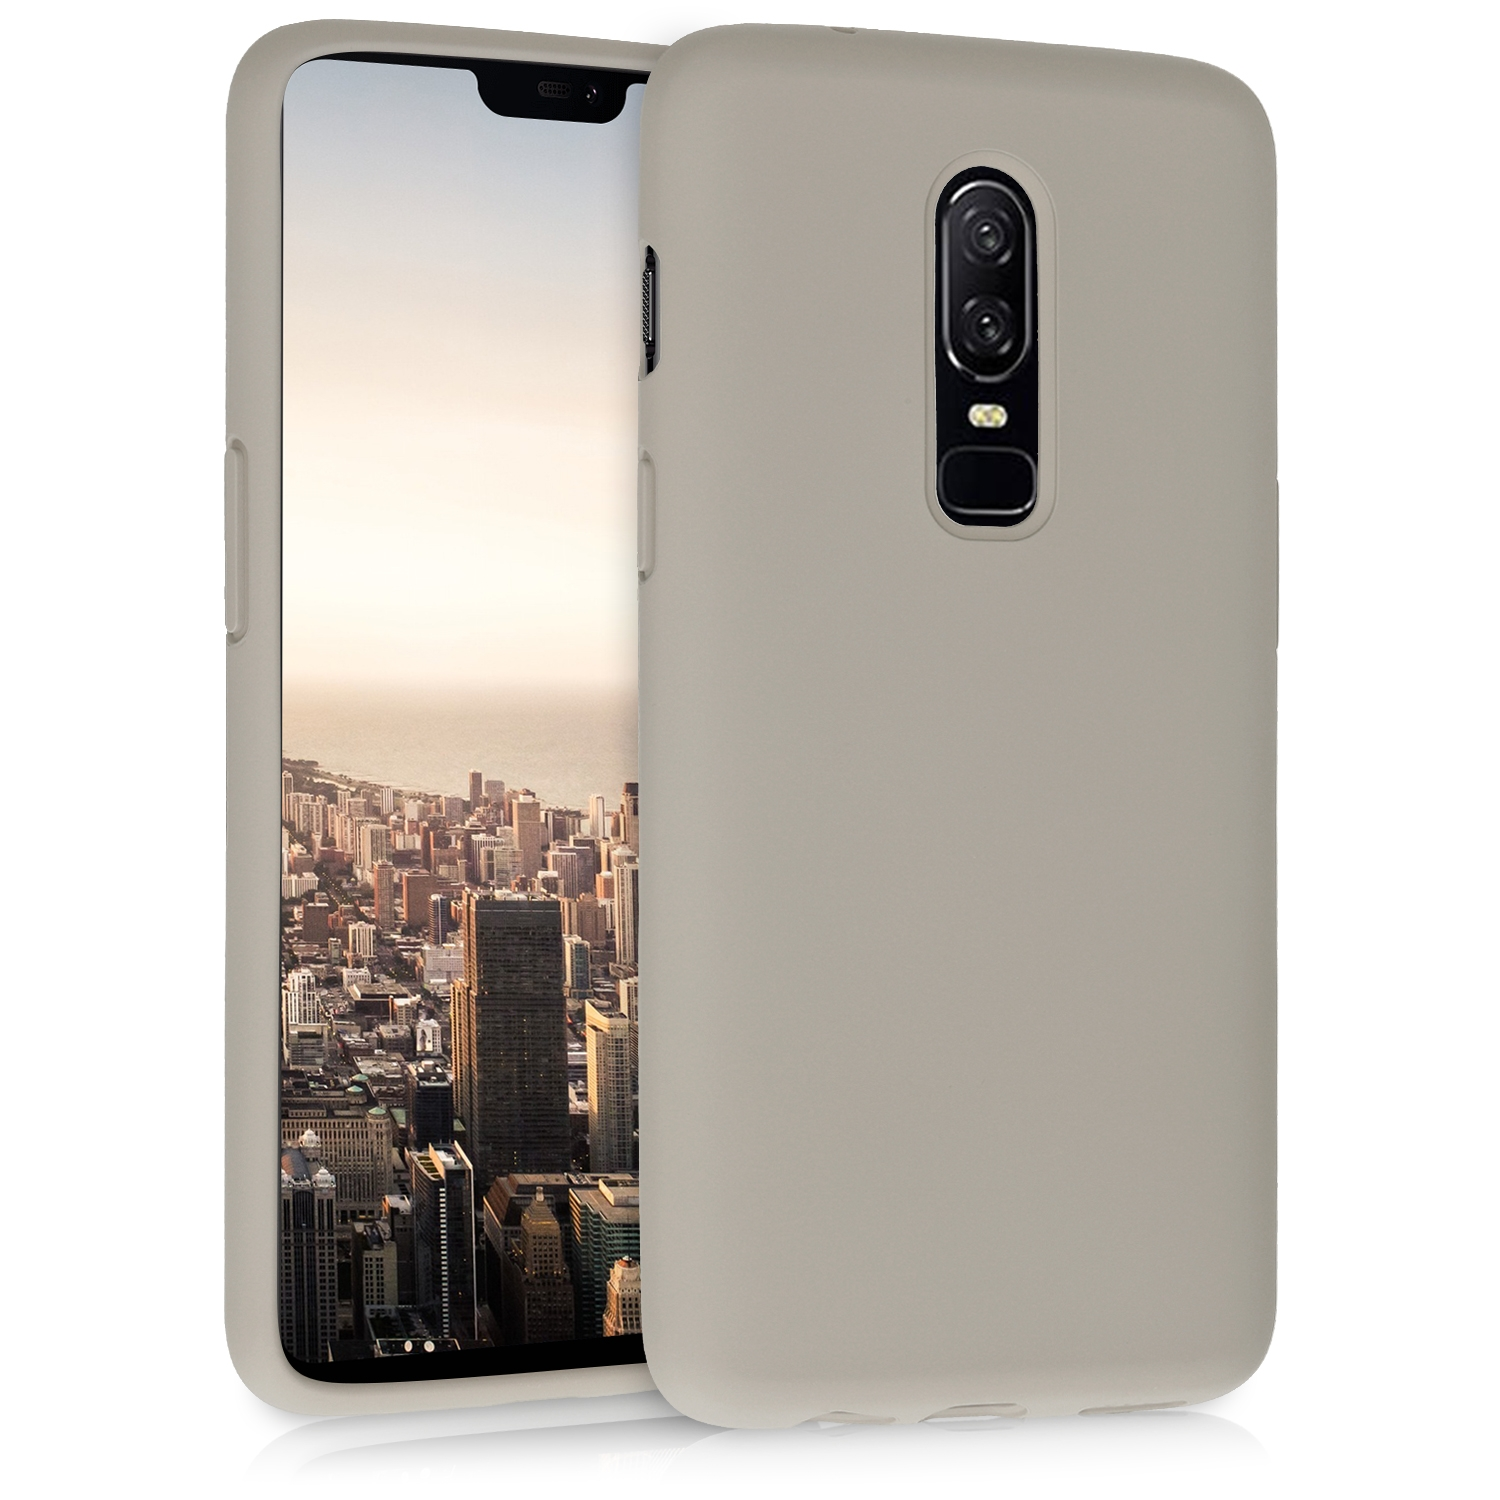 KW Θήκη Σιλικόνης OnePlus 6 - Soft Flexible Rubber Protective Cover - Taupe (46122.43)